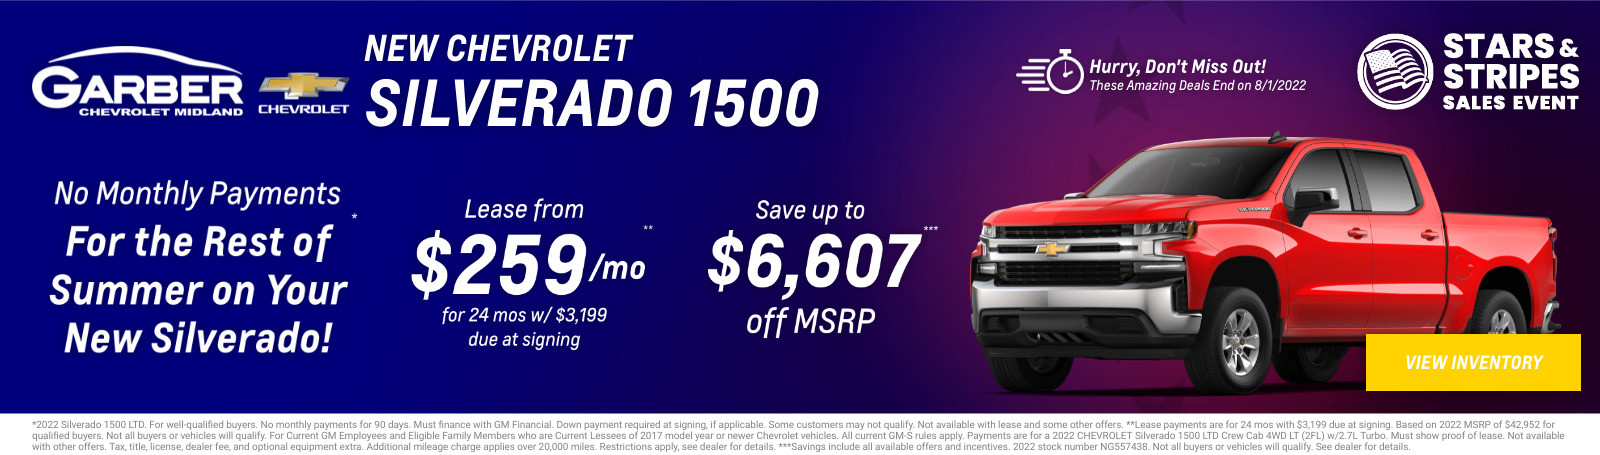 New Chevrolet Silverado Current Deals and Offers in Midland, MI